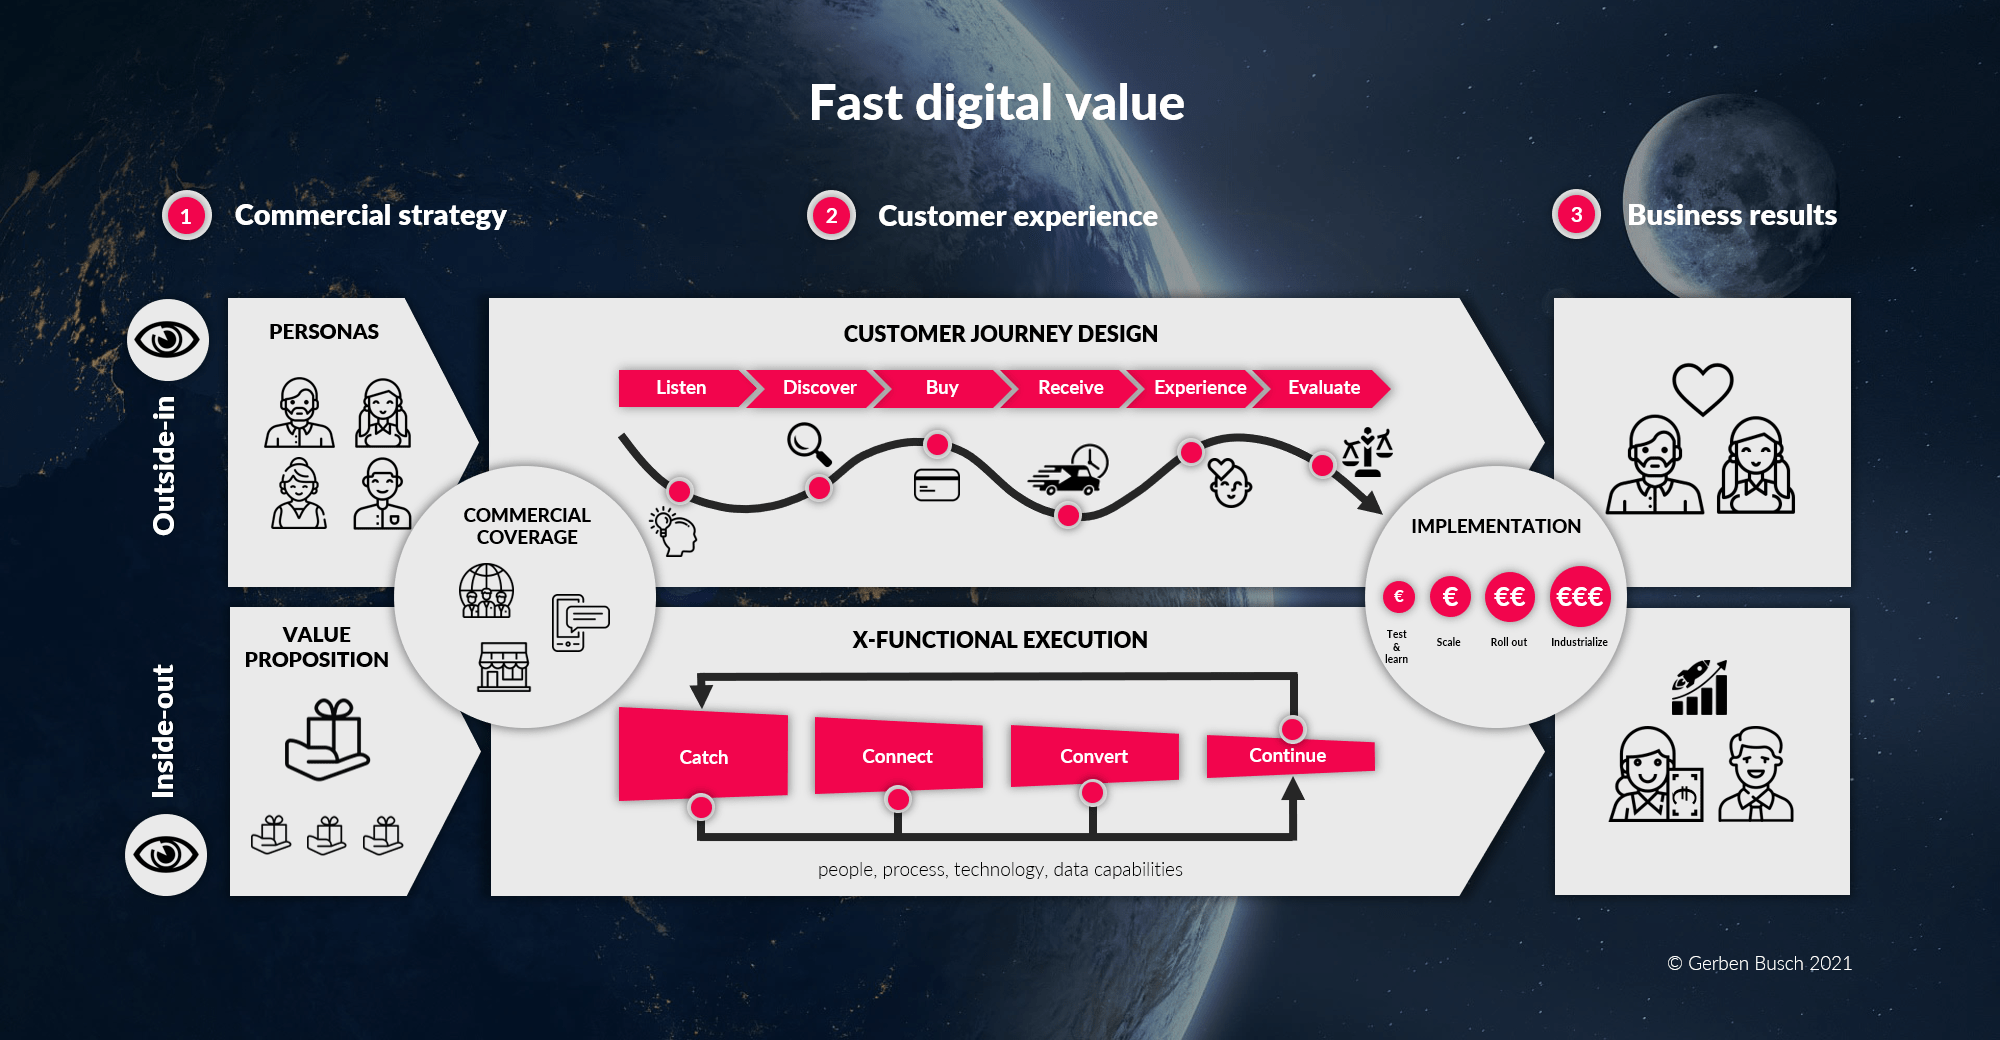 Fast digital value digital transformation customer experience e-commerce CRM loyalty marketing automation